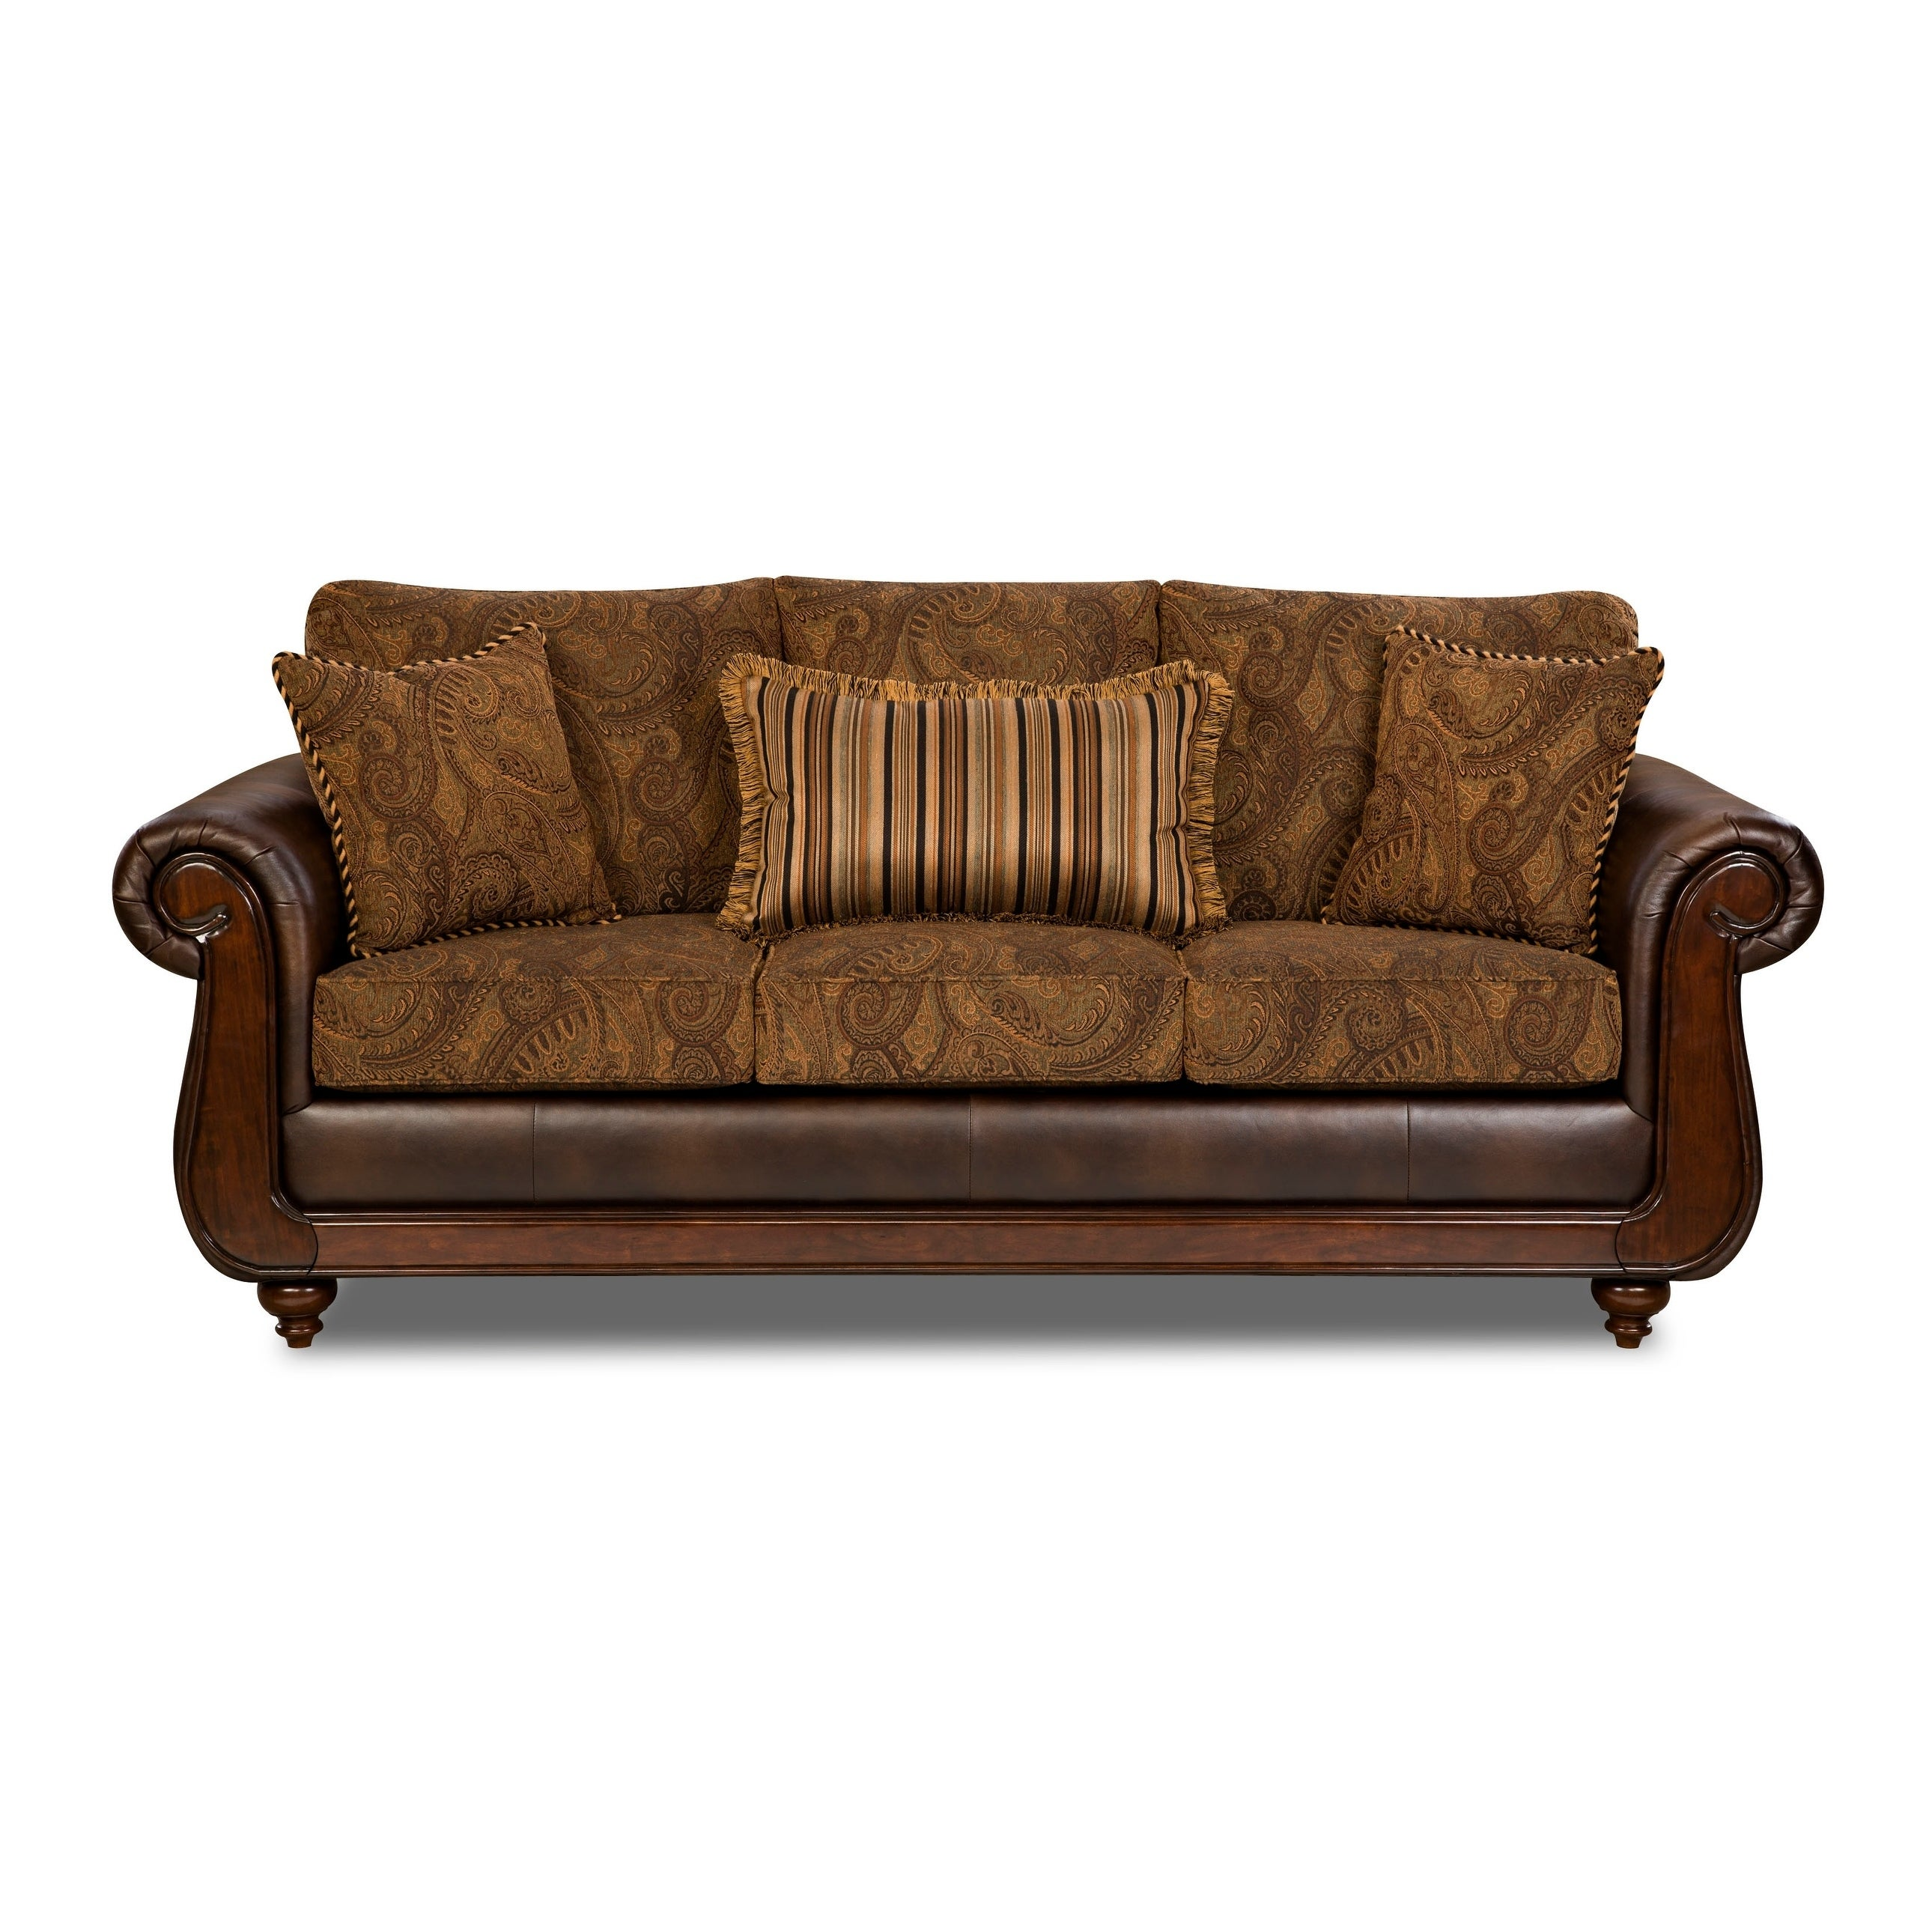 Fantastic Buy Vintage Sofas Couches Online At Overstock Our Best Machost Co Dining Chair Design Ideas Machostcouk